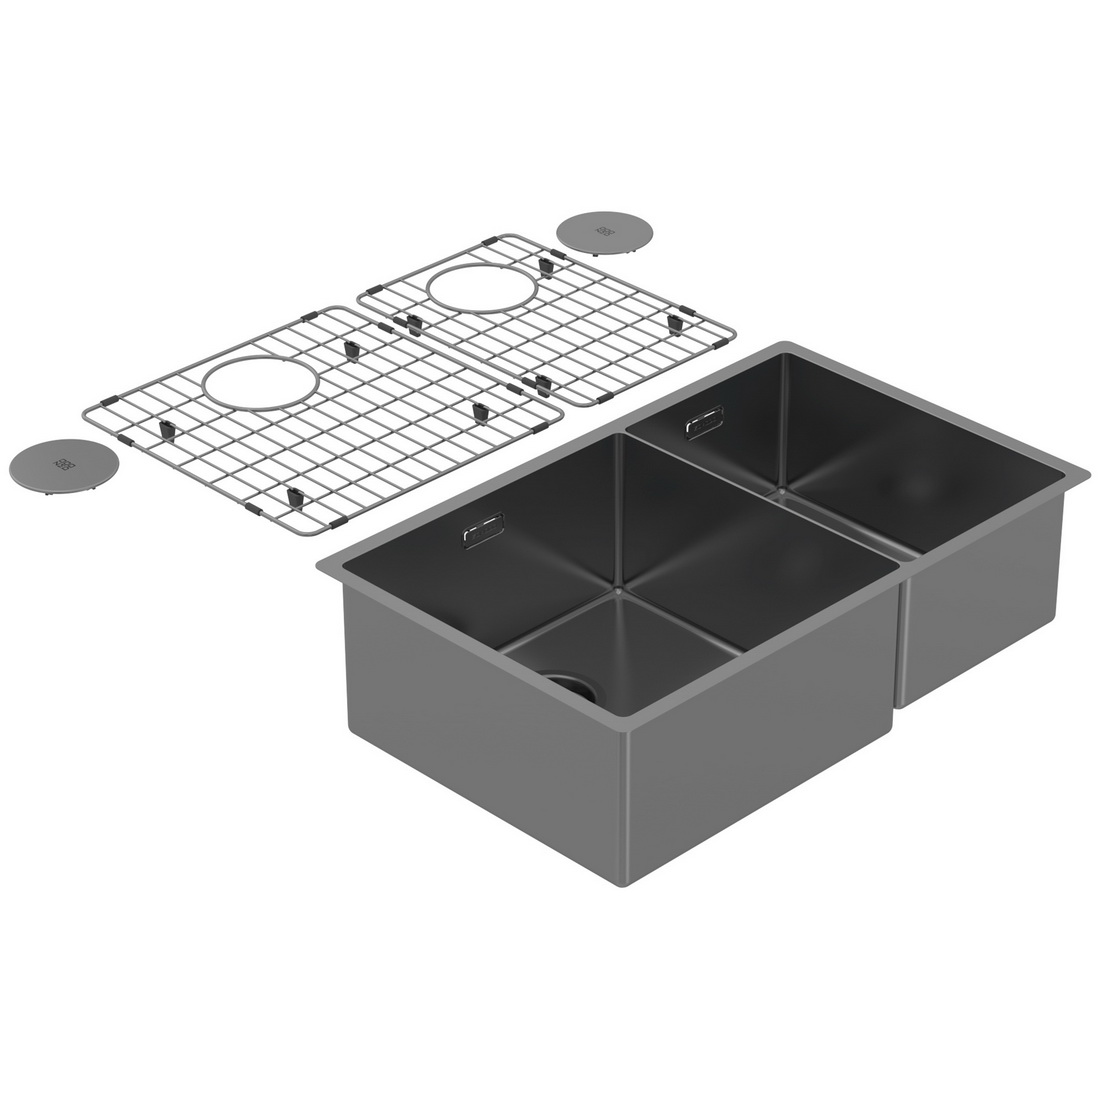 704 x 440 x 200mm Double Bowl Undermount Kitchen Sink Cayman Sonic Grey PearlArc Finish